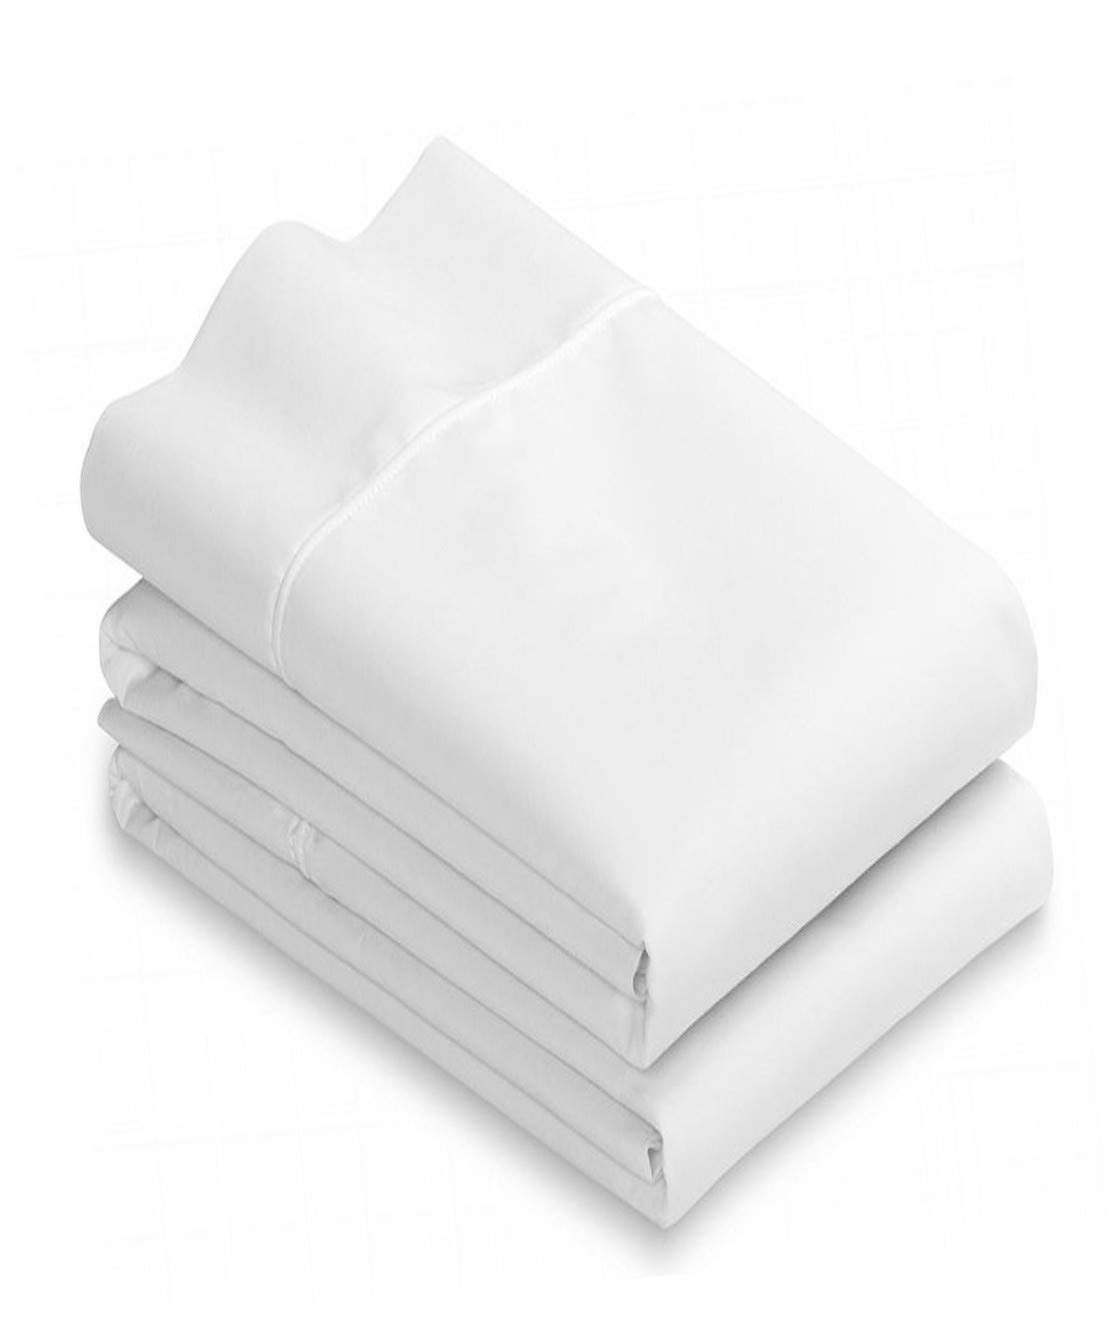 Standard Size White Pillowcases T-200 Heavy Weight Quality